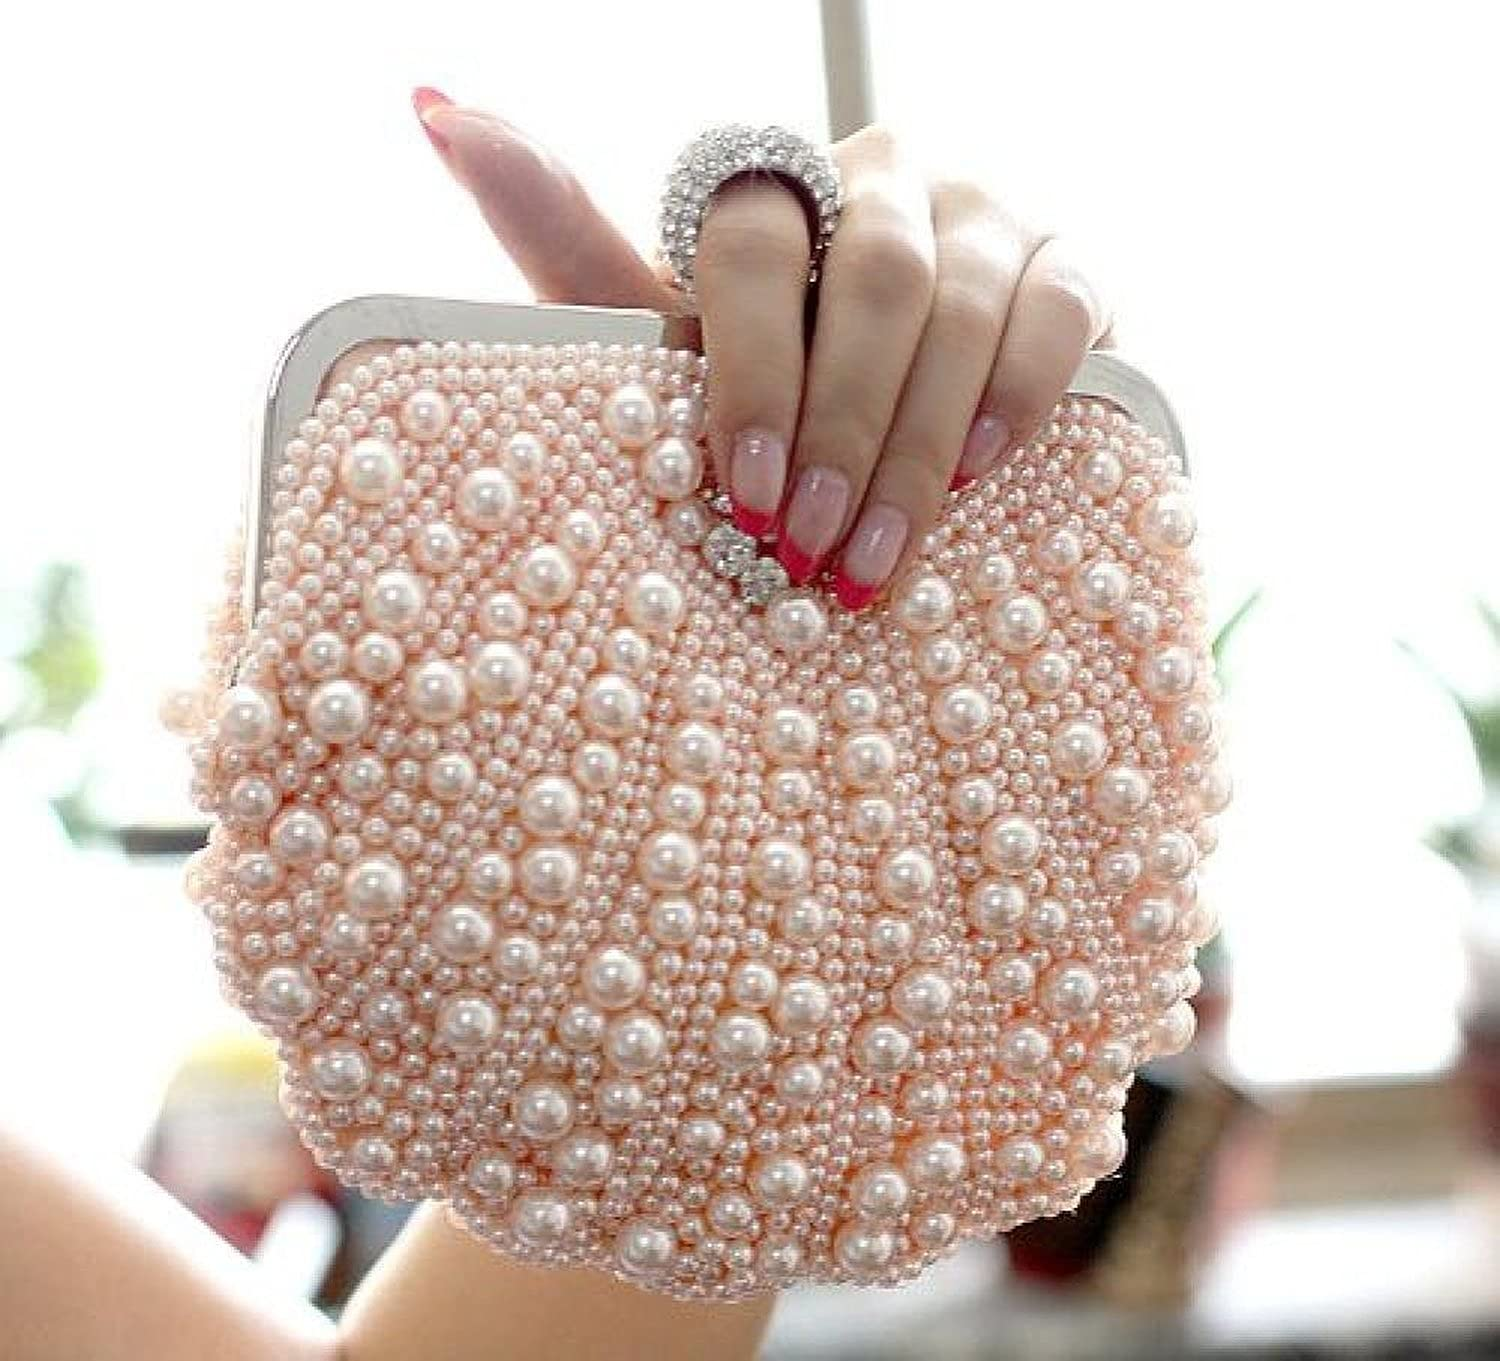 Ladies Elegant Beaded Pearl Rhinestone Evening Wedding Ring Party Clutch Purse Wallet Handbag Karazan